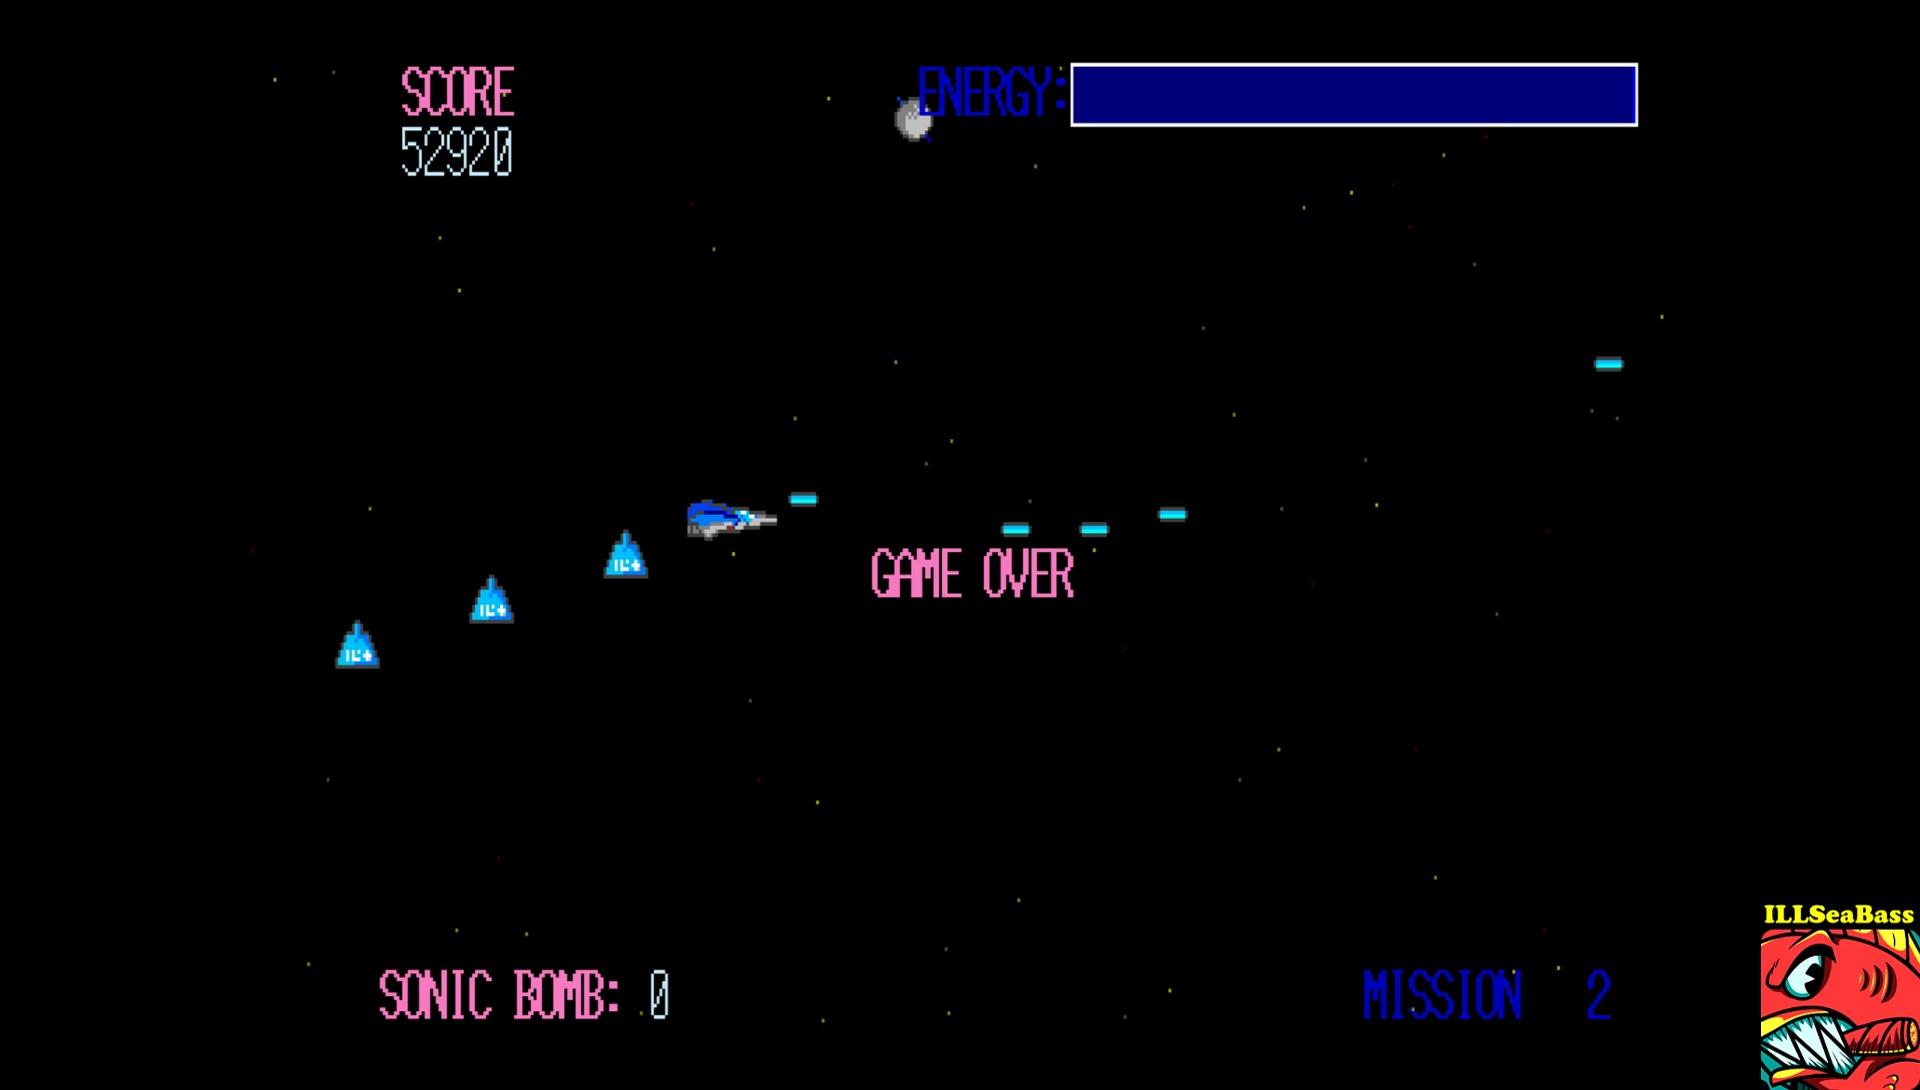 ILLSeaBass: First Mission (Sharp X68000 Emulated) 52,920 points on 2017-06-26 21:28:50